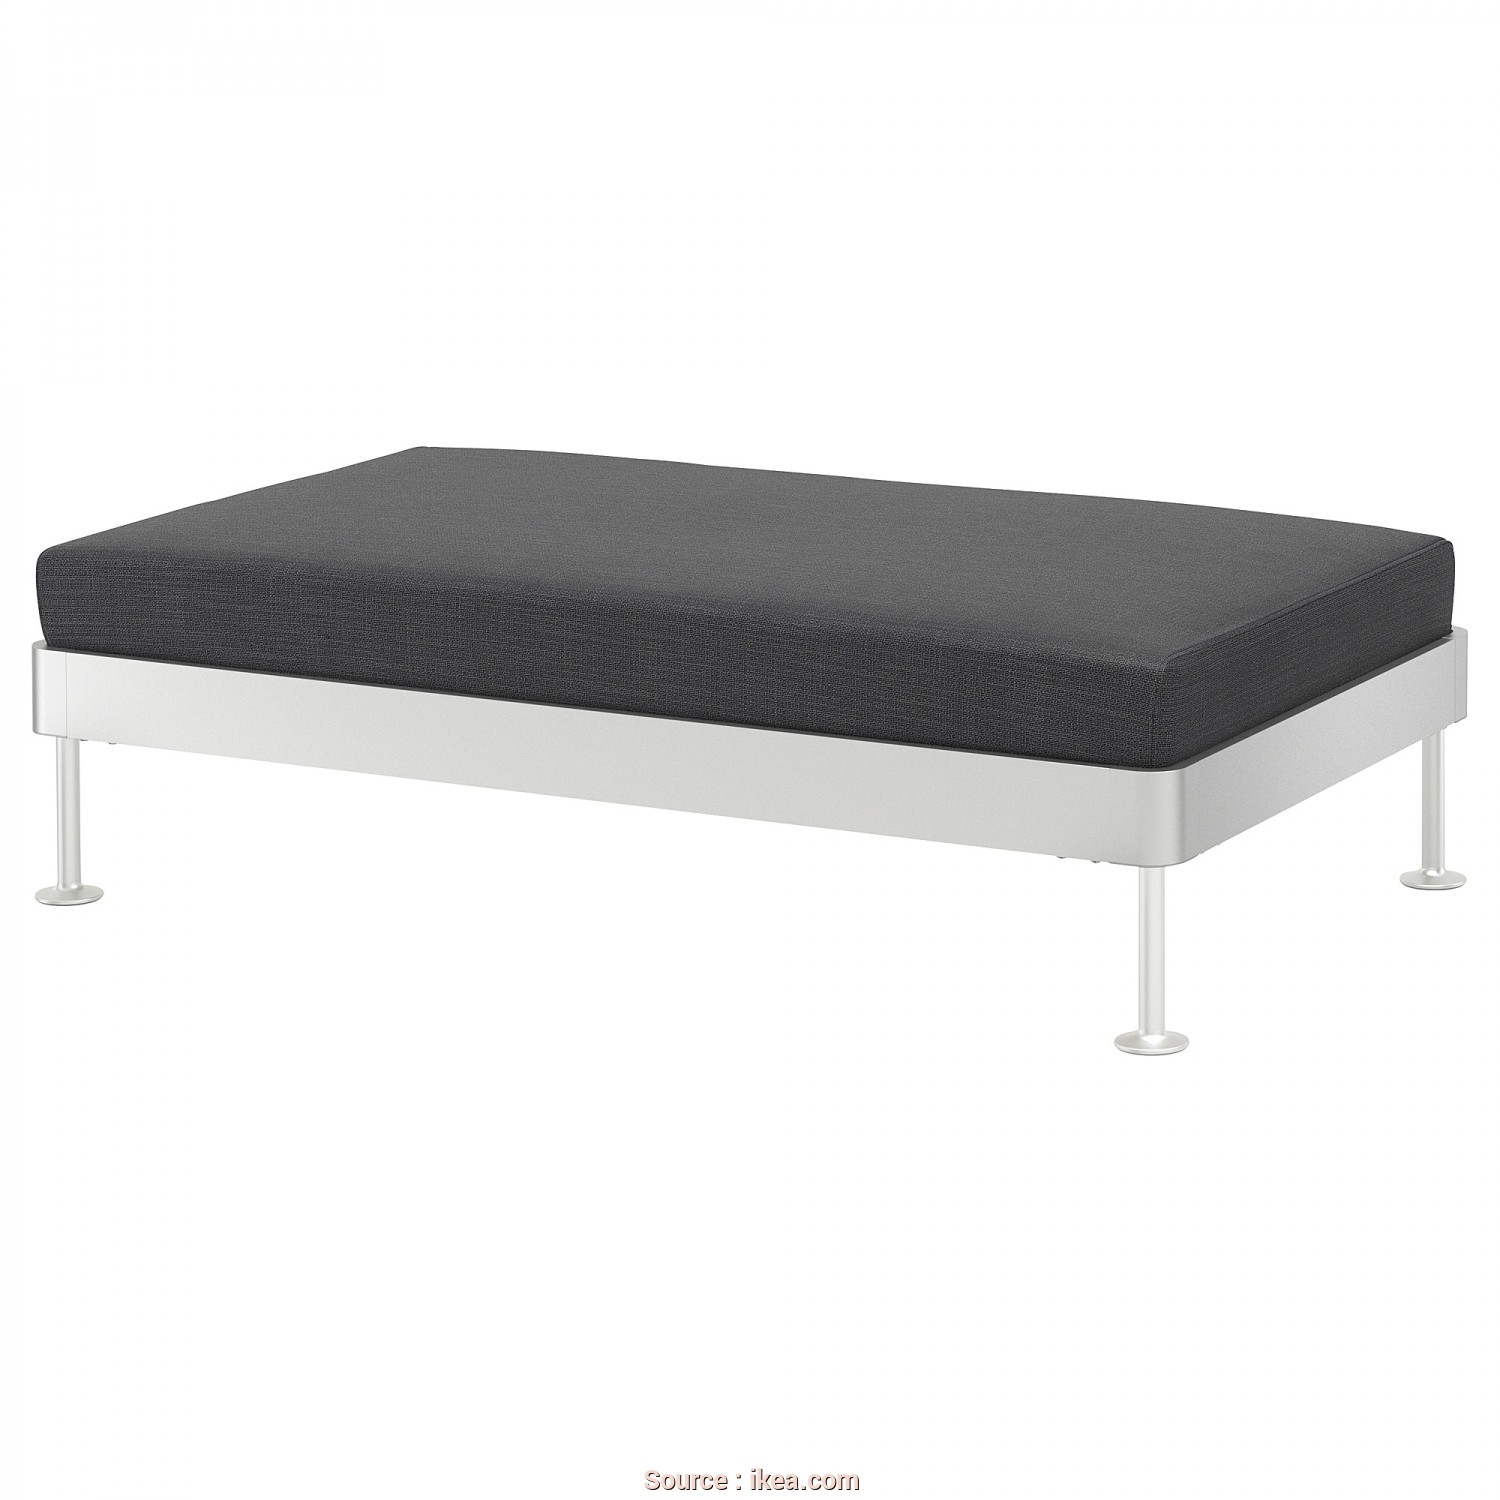 Ikea Sofa Cama Dos Plazas - Sofa Chaise Longue Wallapop